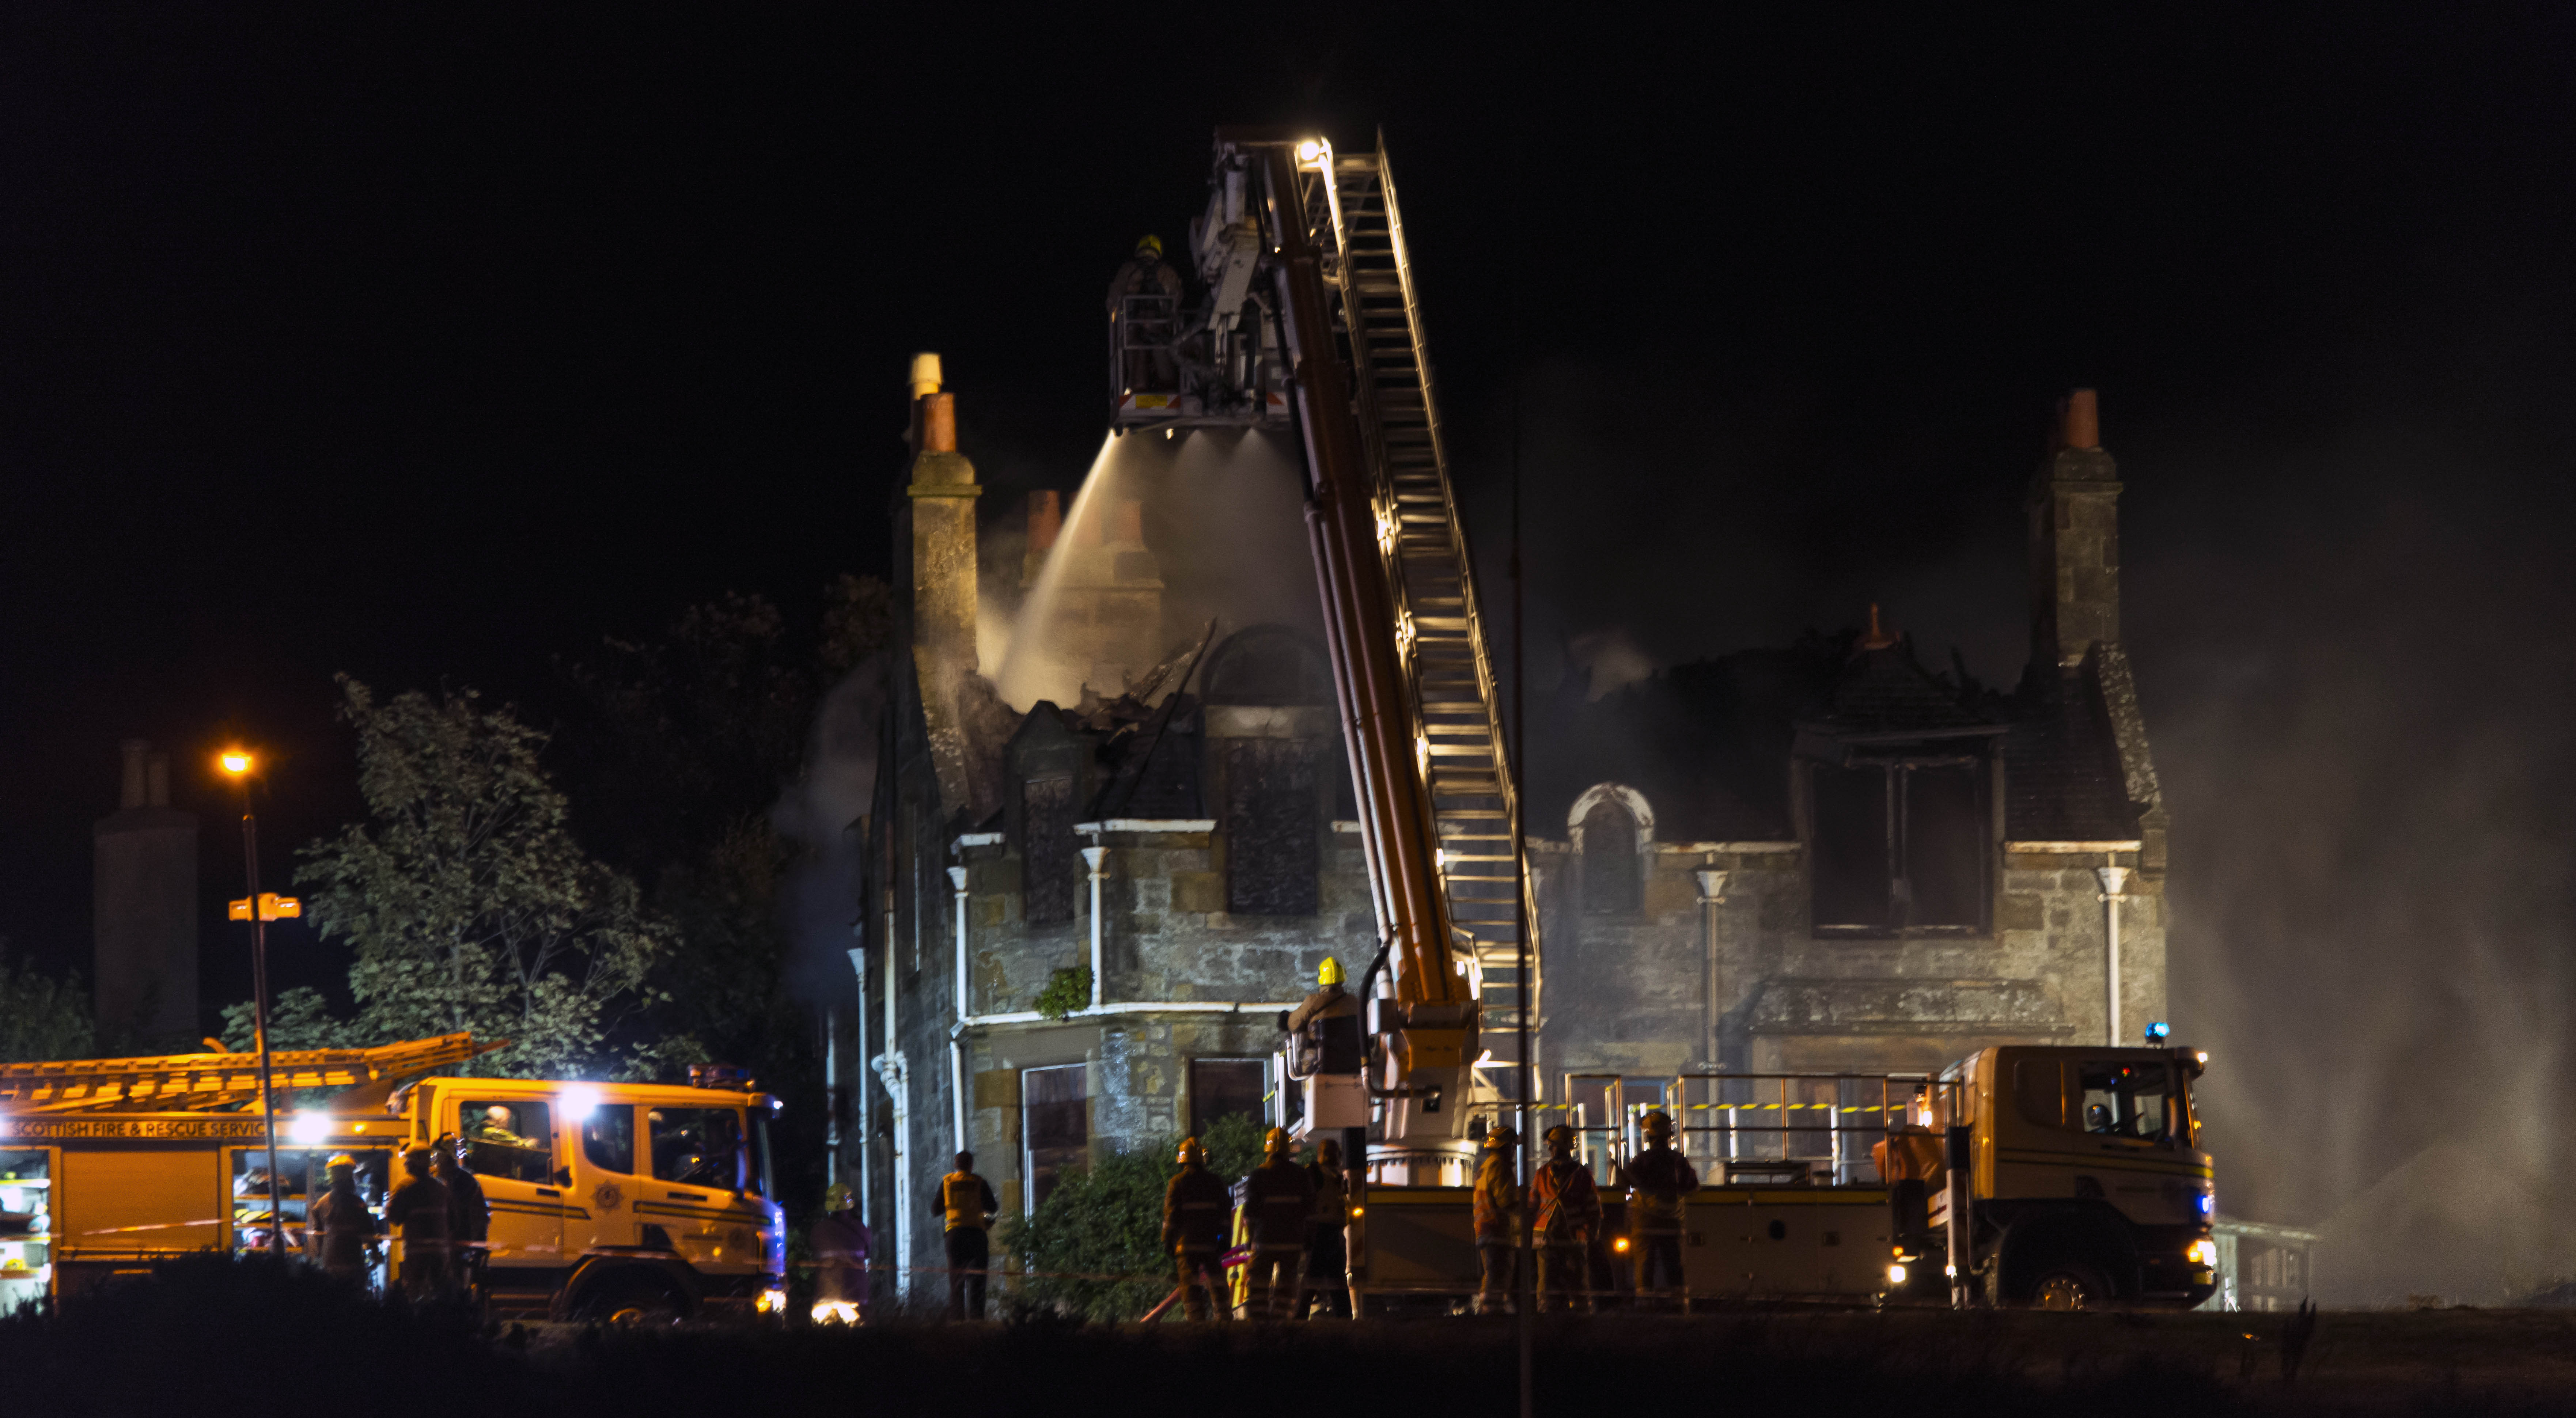 Fire at abandoned property in Lossiemouth